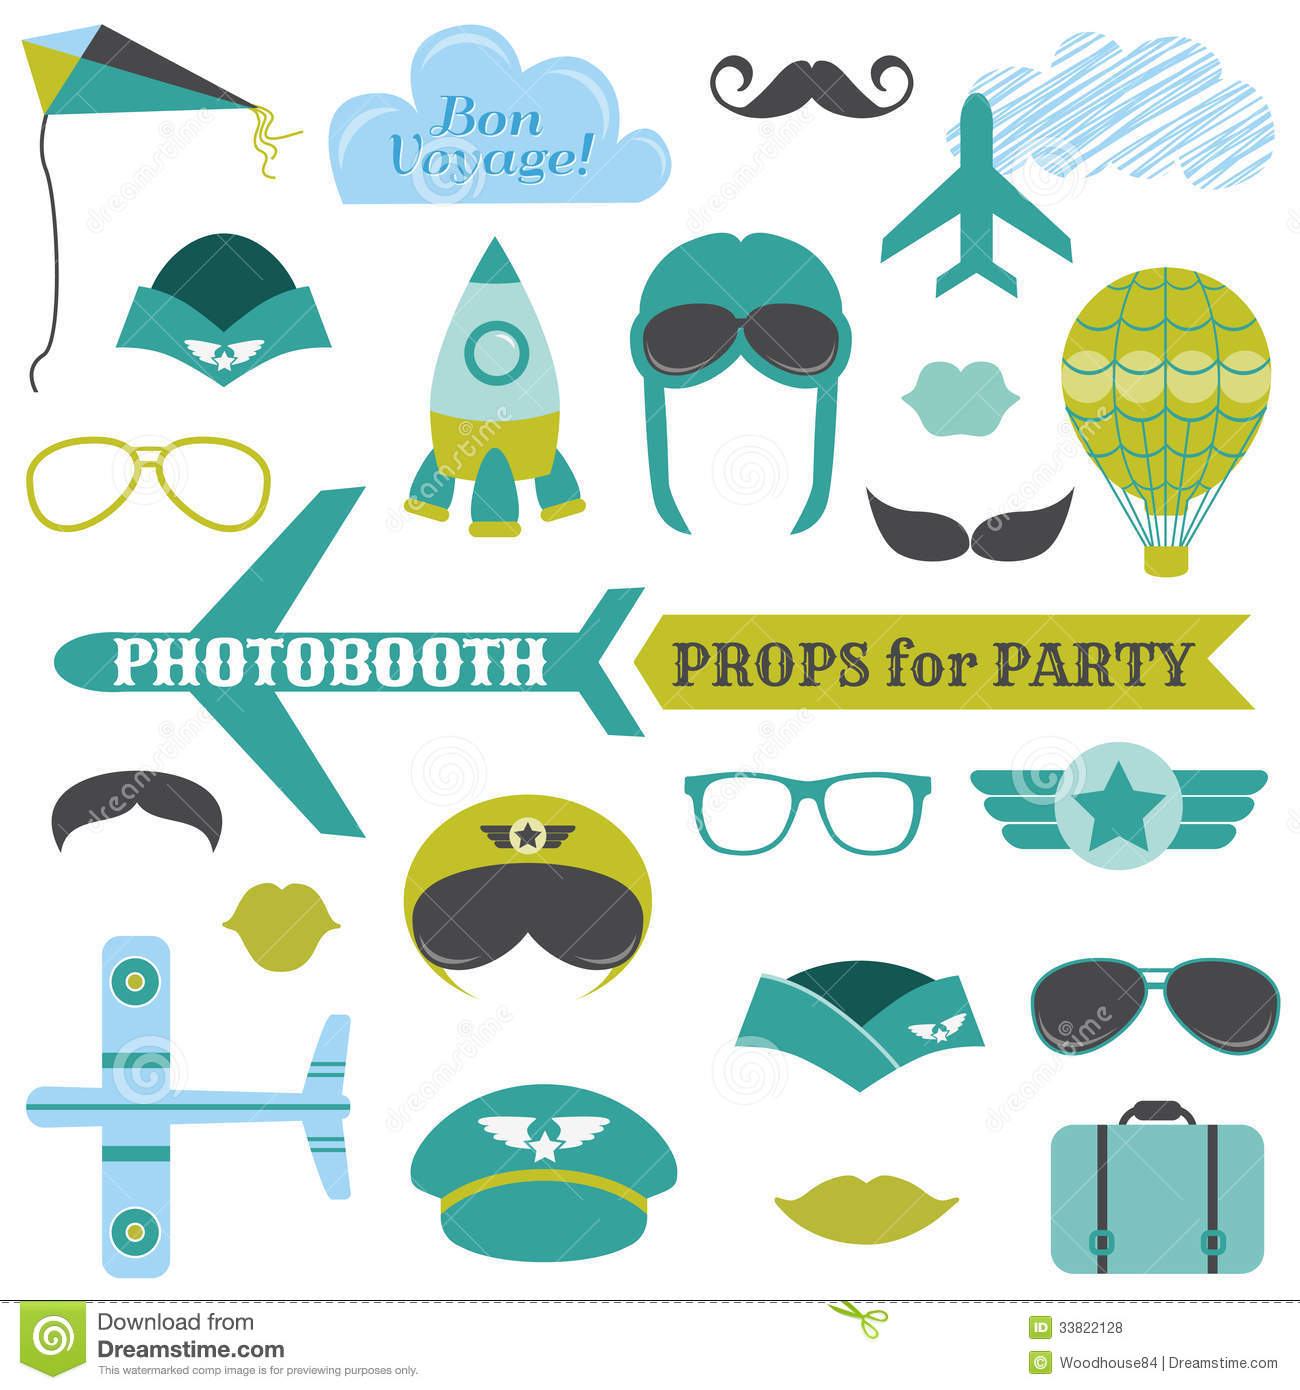 Airplane Party Set - Photobooth Props Royalty Free Stock Photos - Image: 33822128